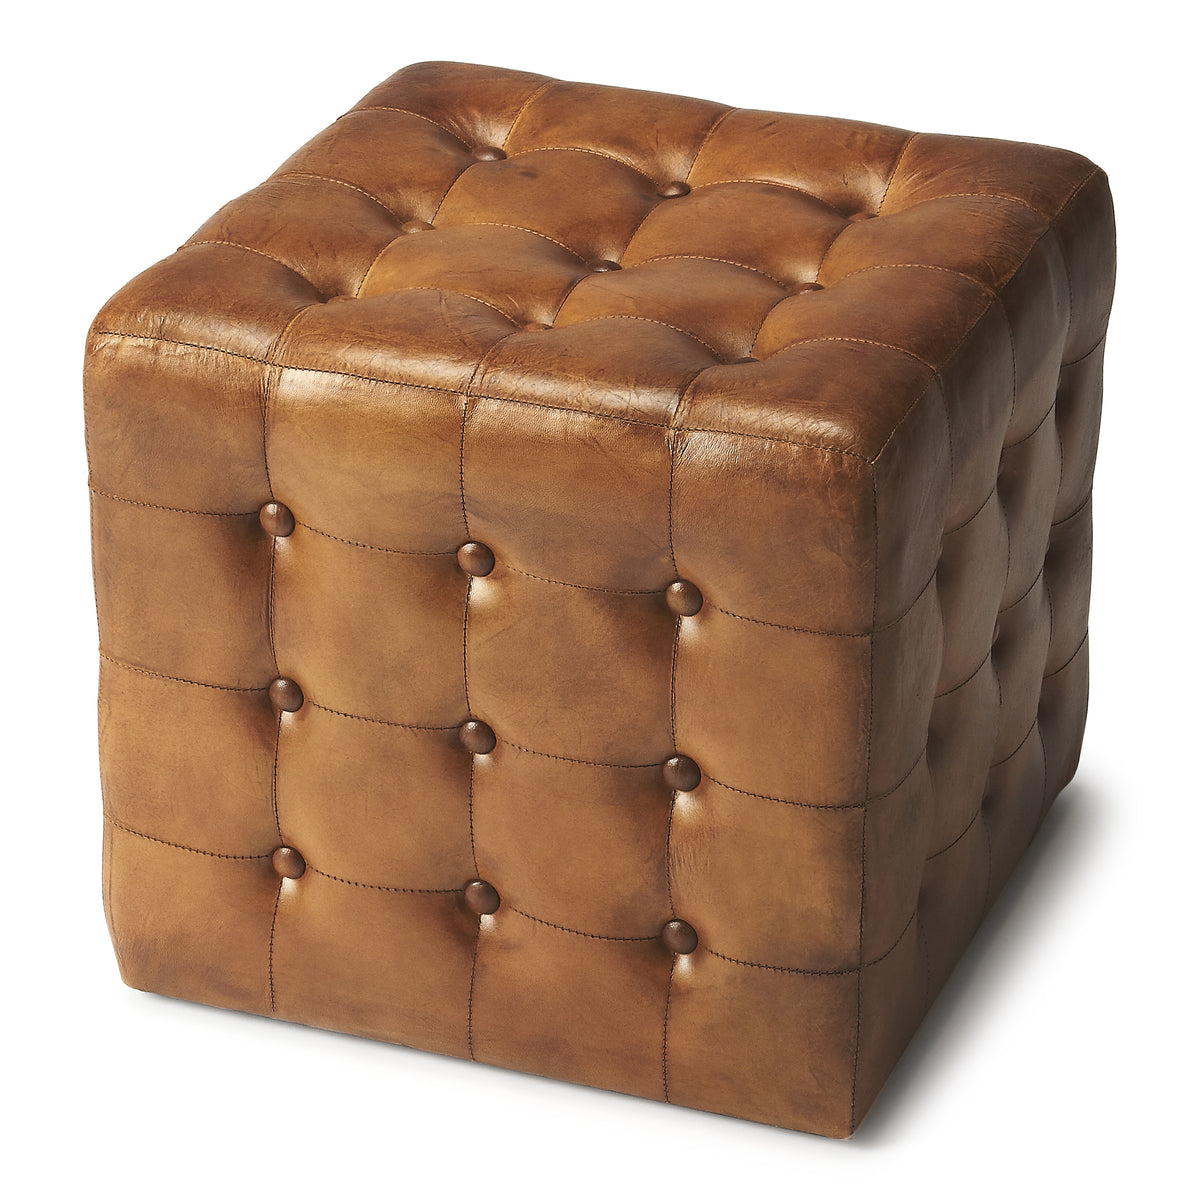 LEON - BROWN LEATHER - OTTOMAN